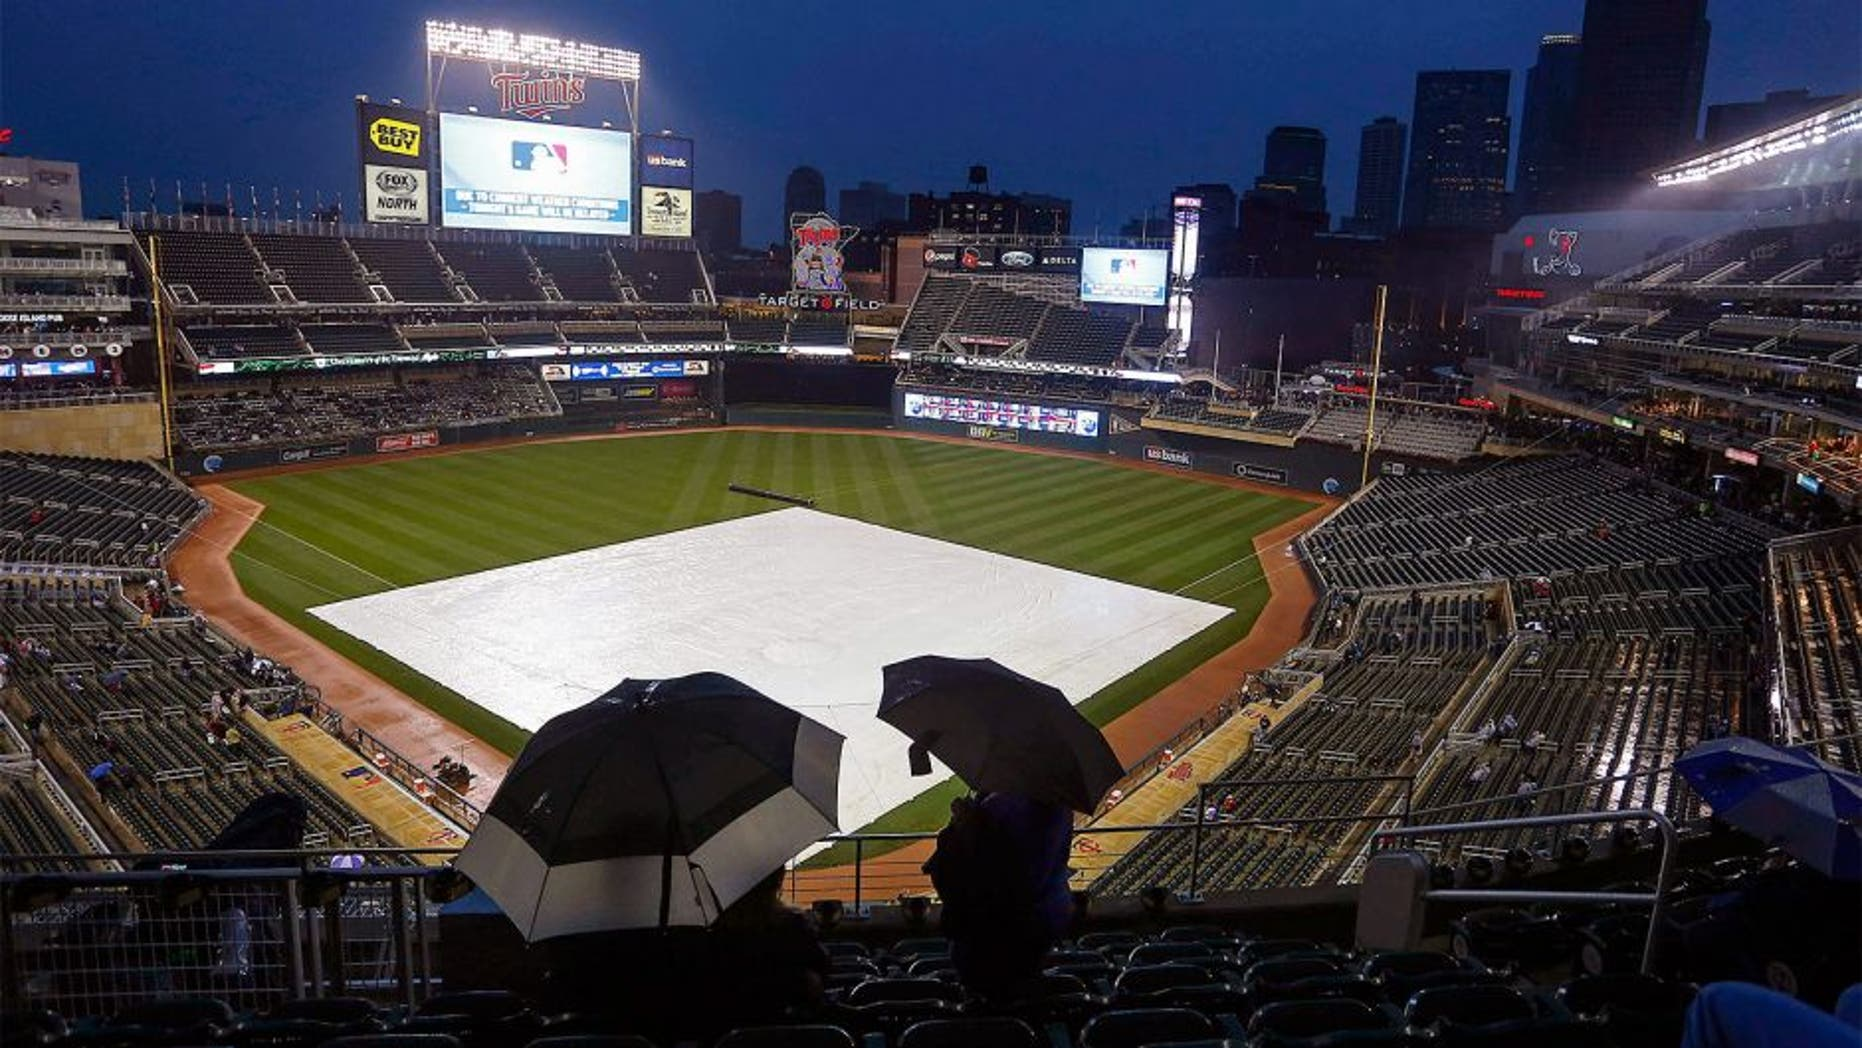 Sep 18, 2015; Minneapolis, MN, USA; Fans hide under umbrellas as rain delays the game between the Los Angeles Angels and the Minnesota Twins at Target Field. Mandatory Credit: Bruce Kluckhohn-USA TODAY Sports